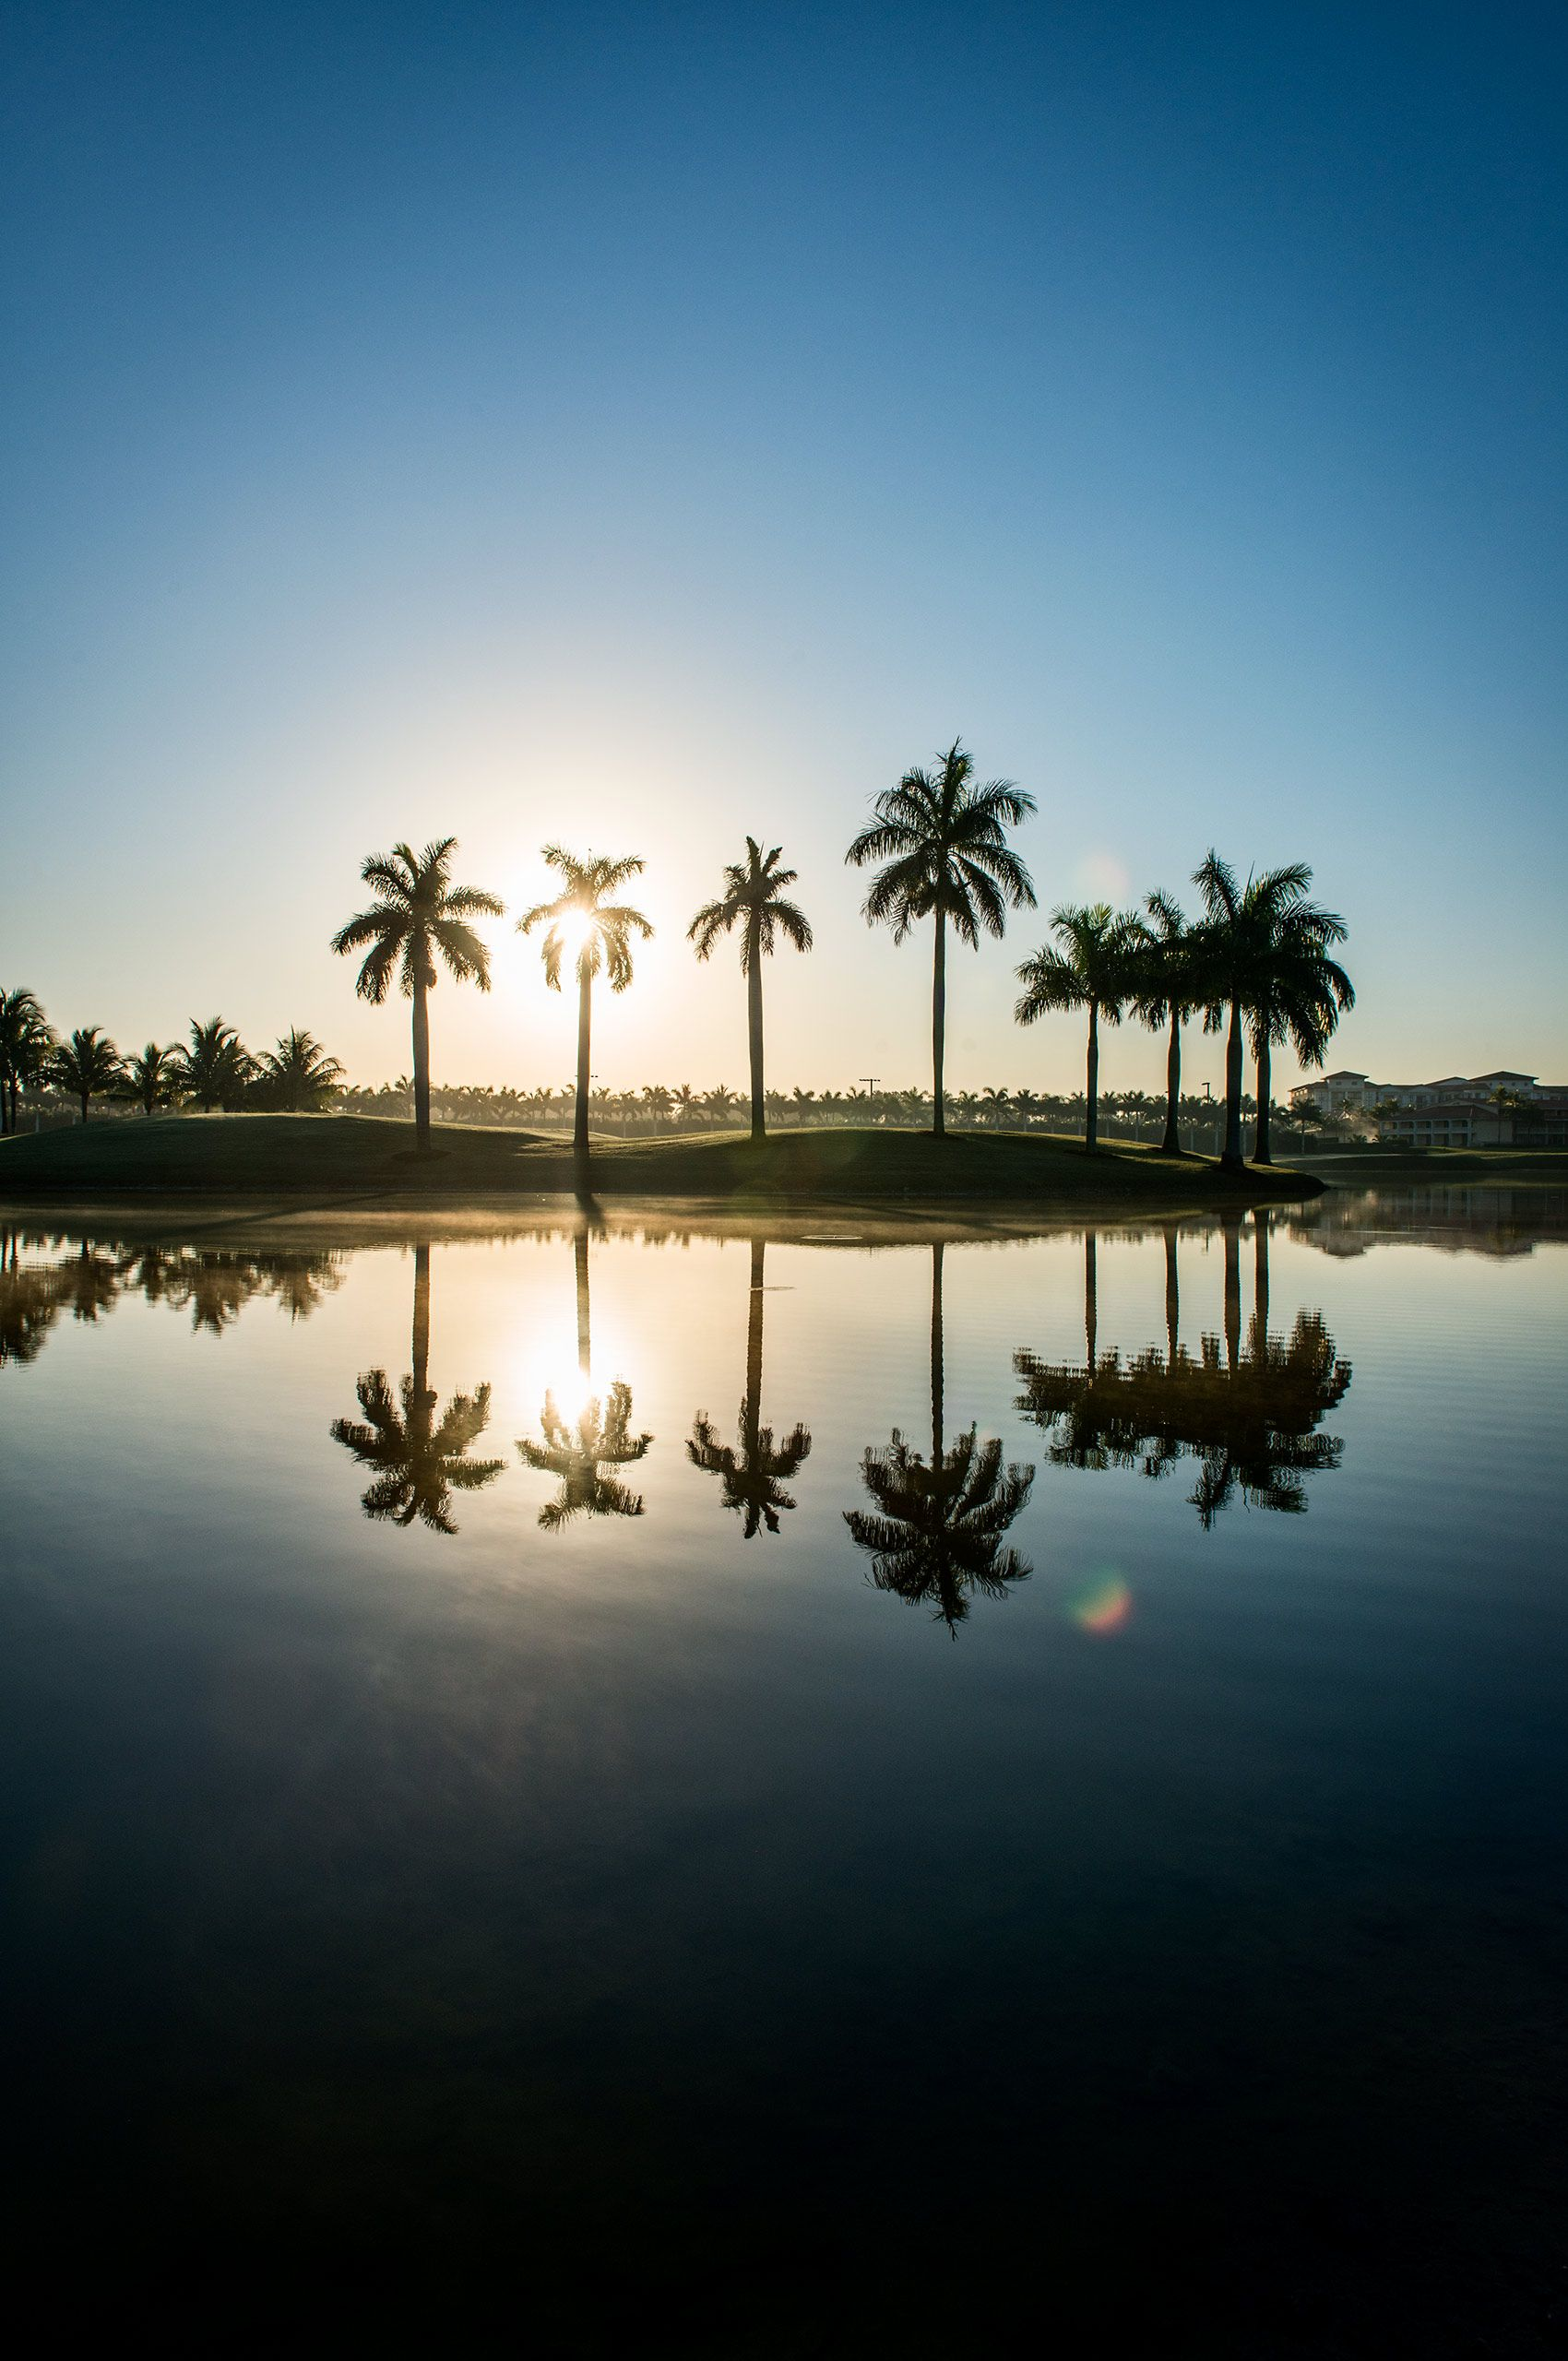 Palmtrees-reflection-in-water-HenrikOlundPhotography..jpg